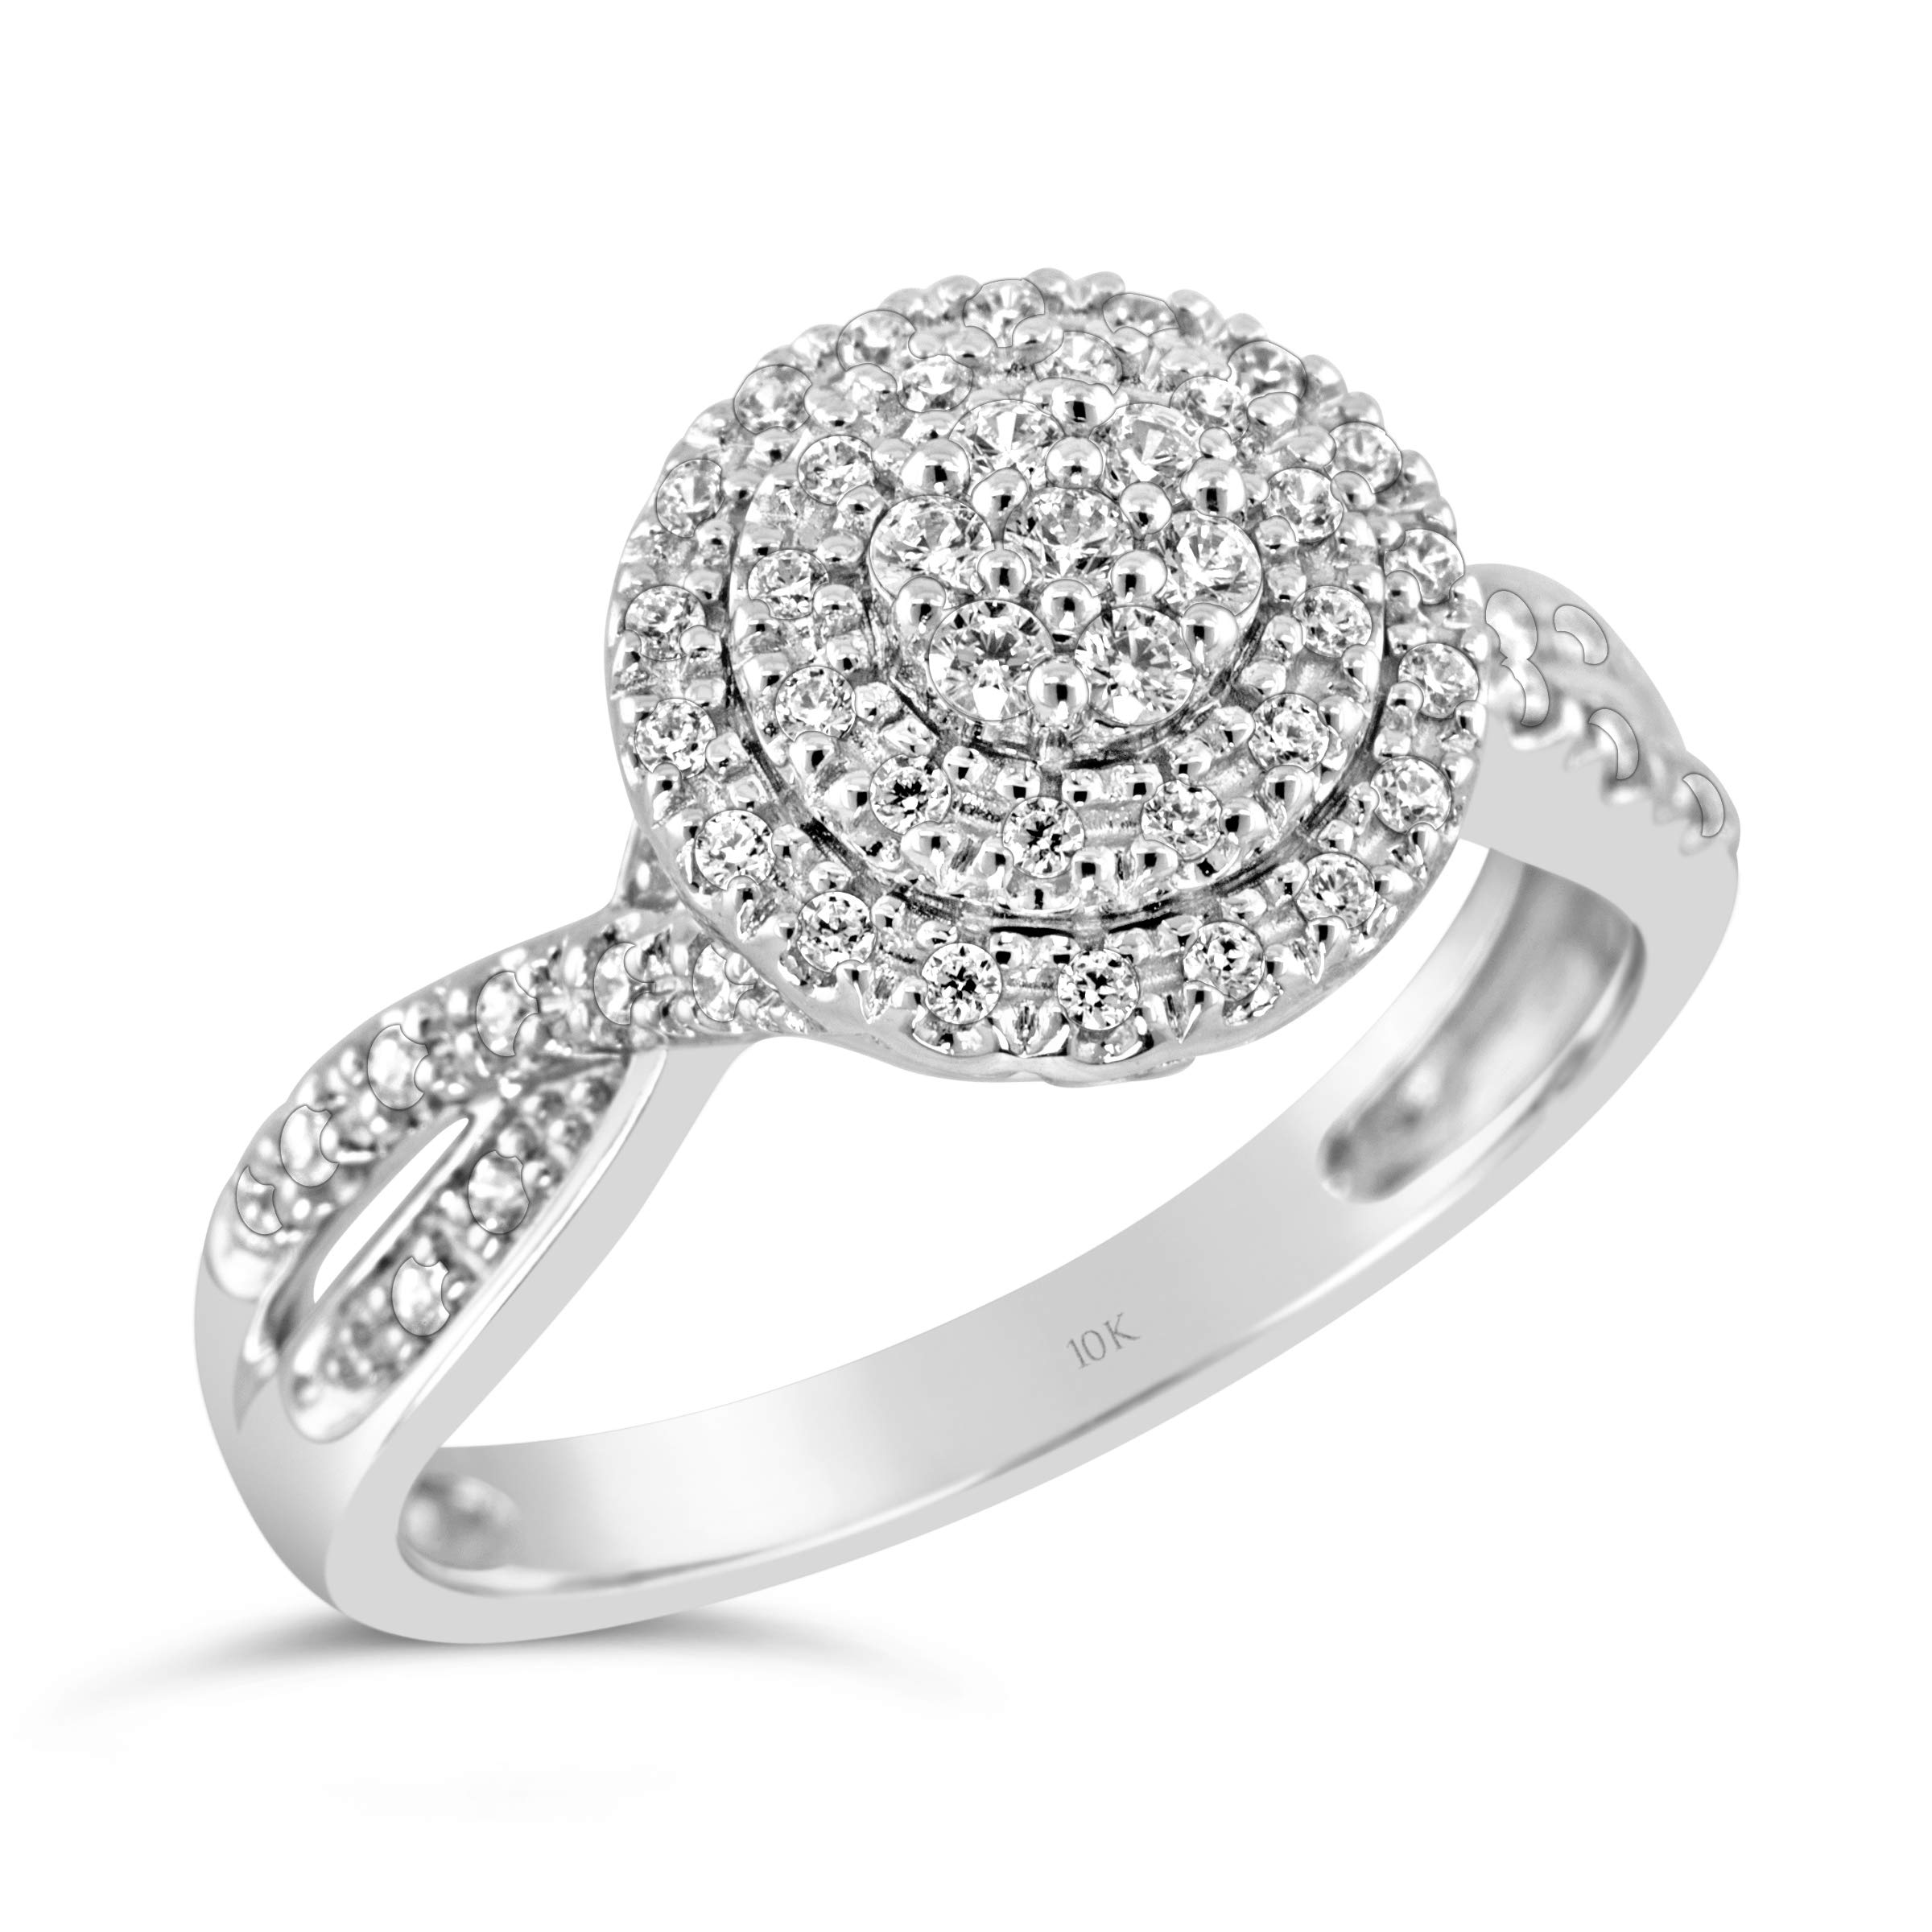 Brilliant Expressions 10K White Gold 1/3 Cttw Conflict Free Diamond Triple Halo Engagement Ring (I-J Color, I2-I3 Clarity), Size 6